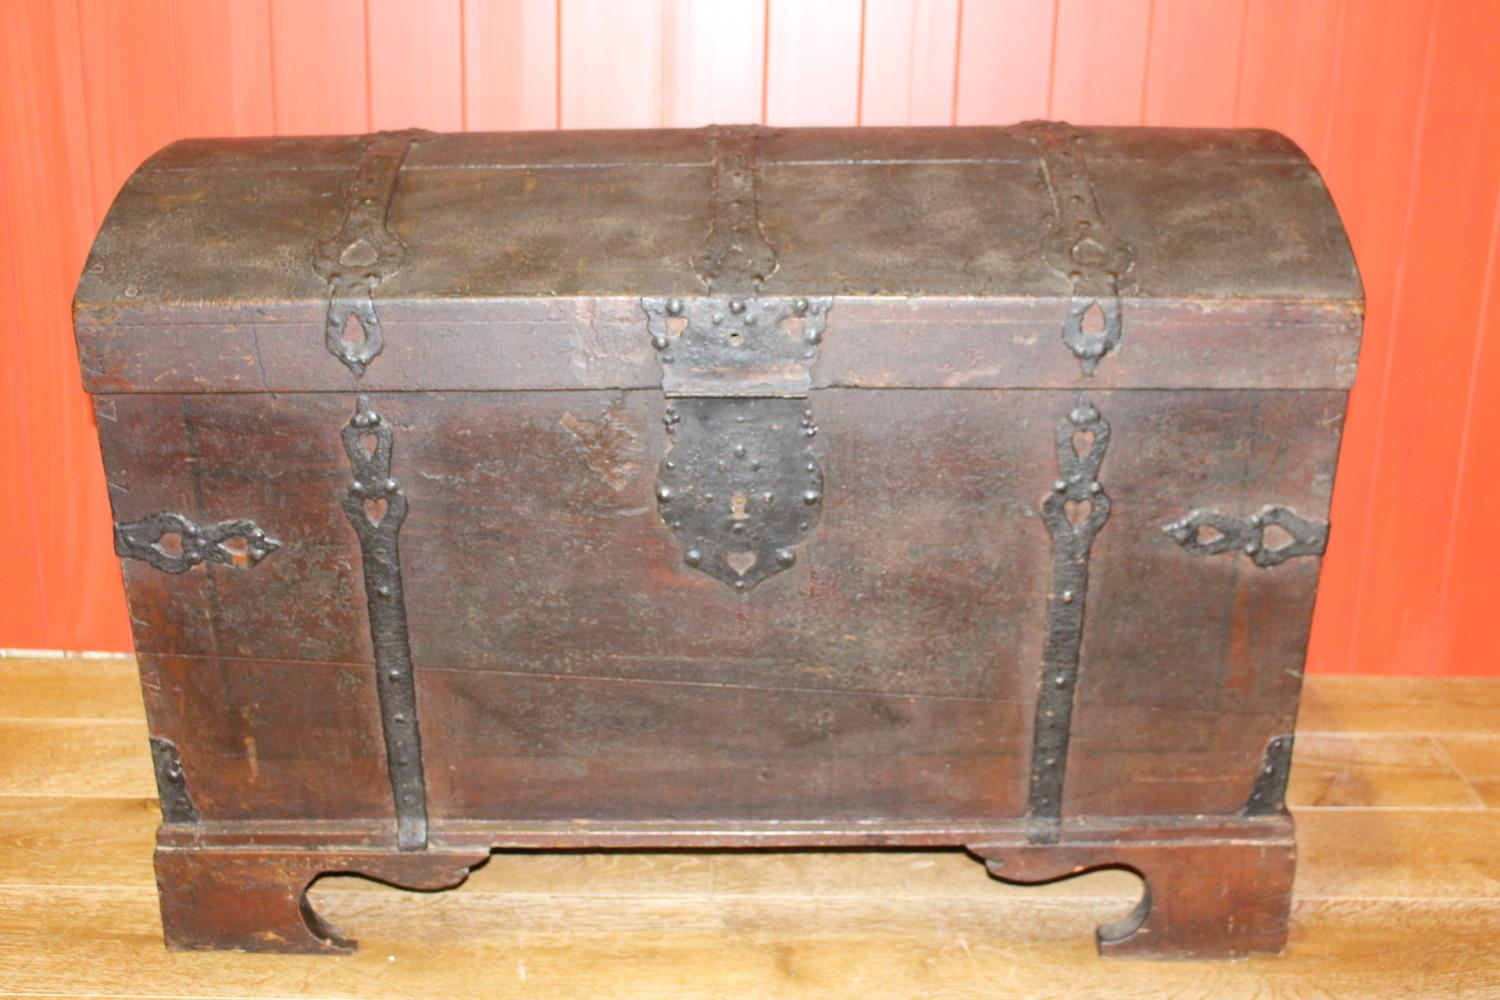 Ship's trunk with metal straps